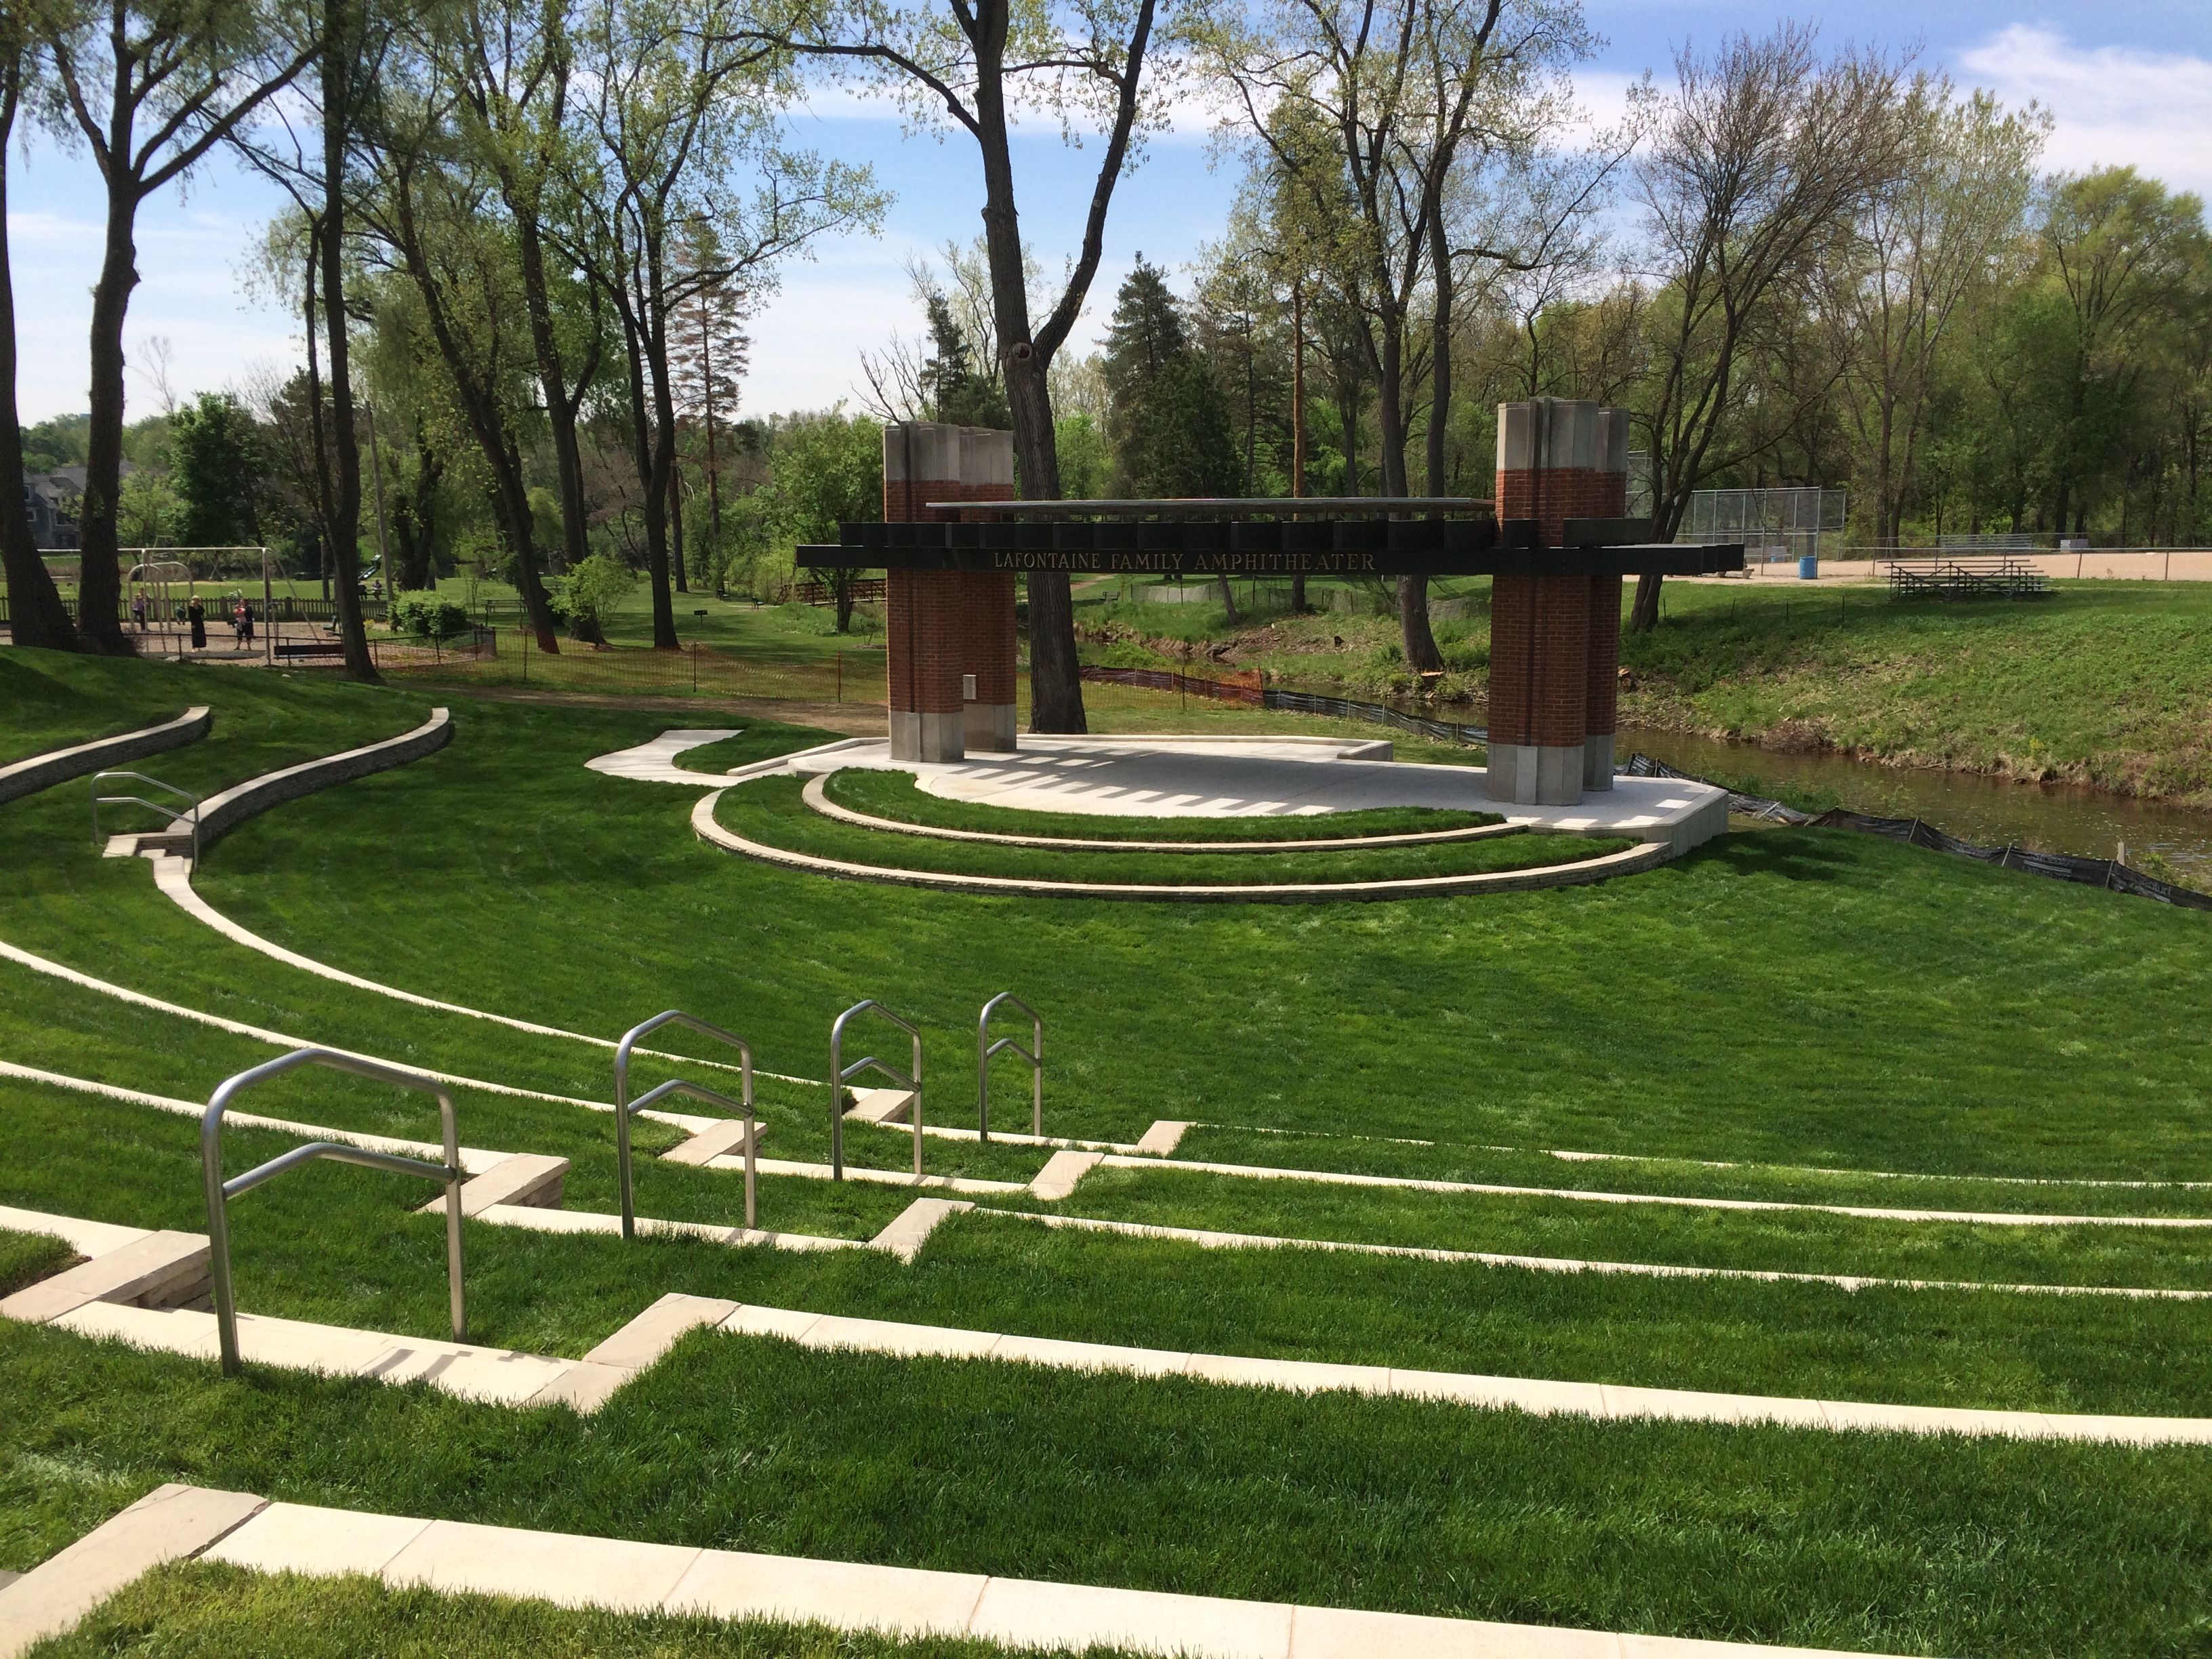 LaFontaine Family Amphitheater